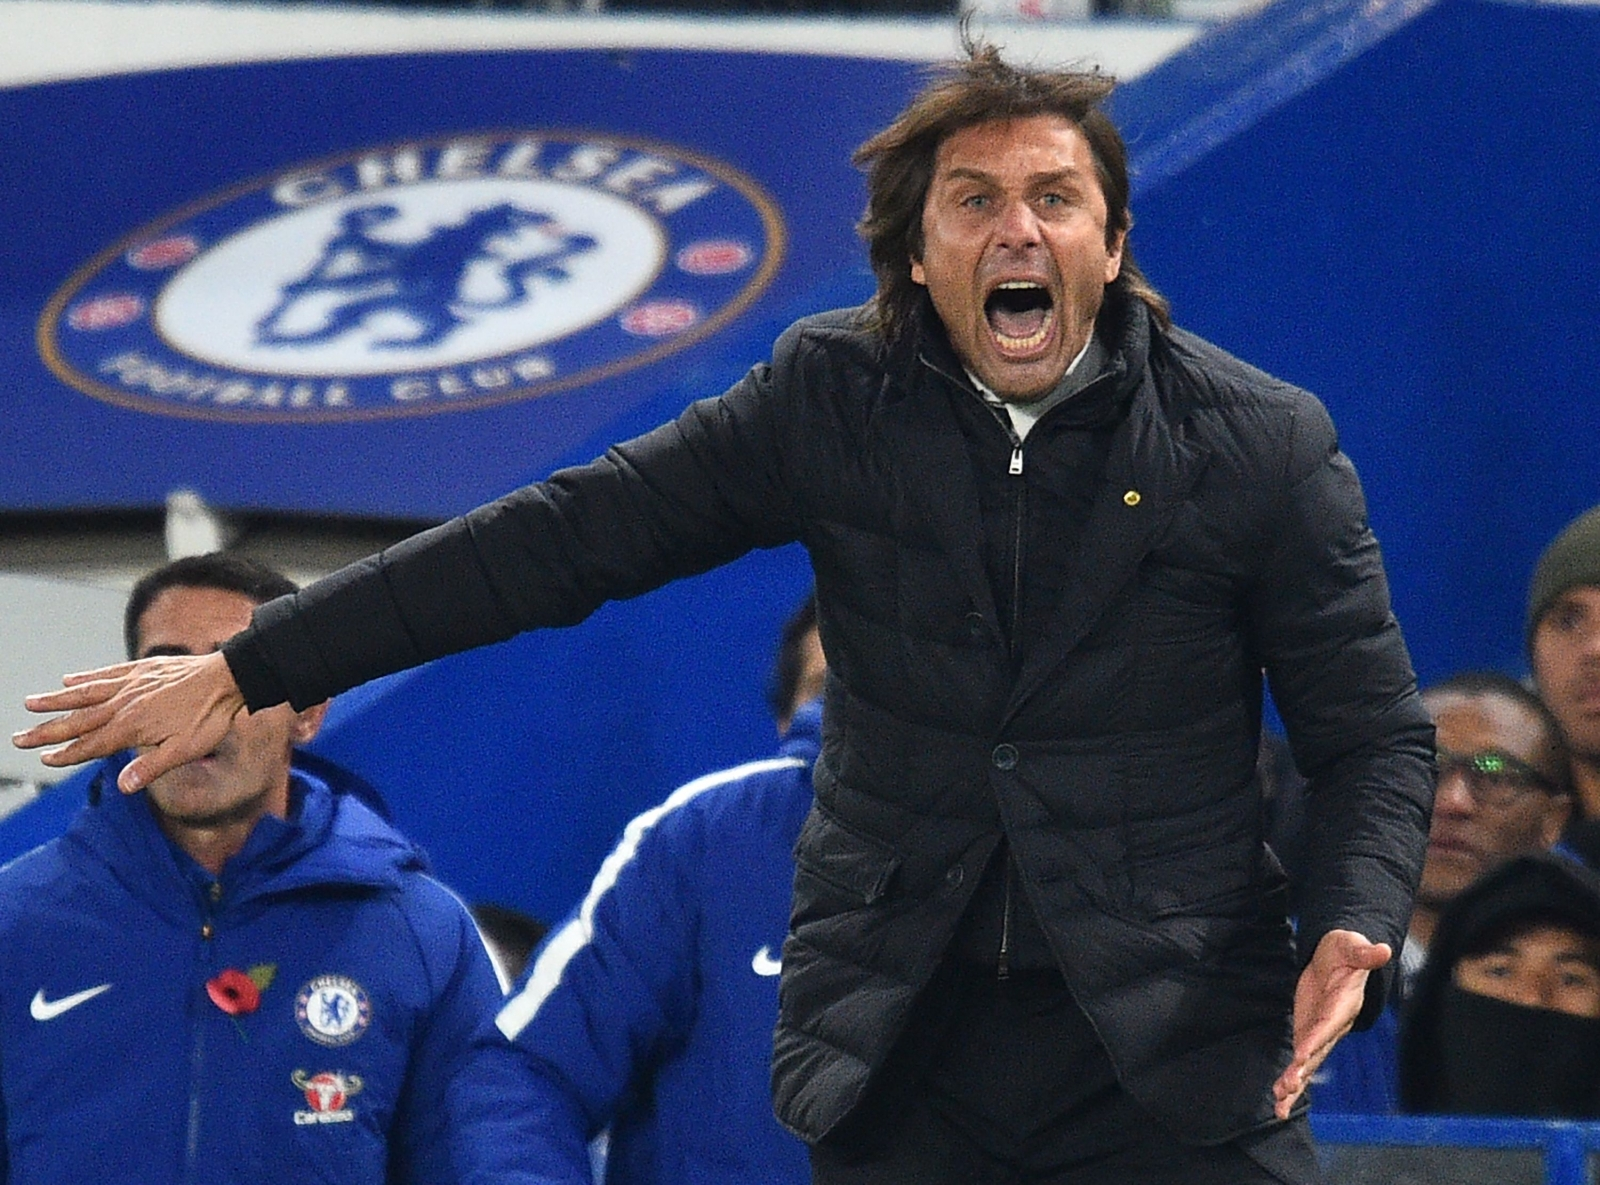 Chelsea boss Antonio Conte calls for end to 'b******t negativity'